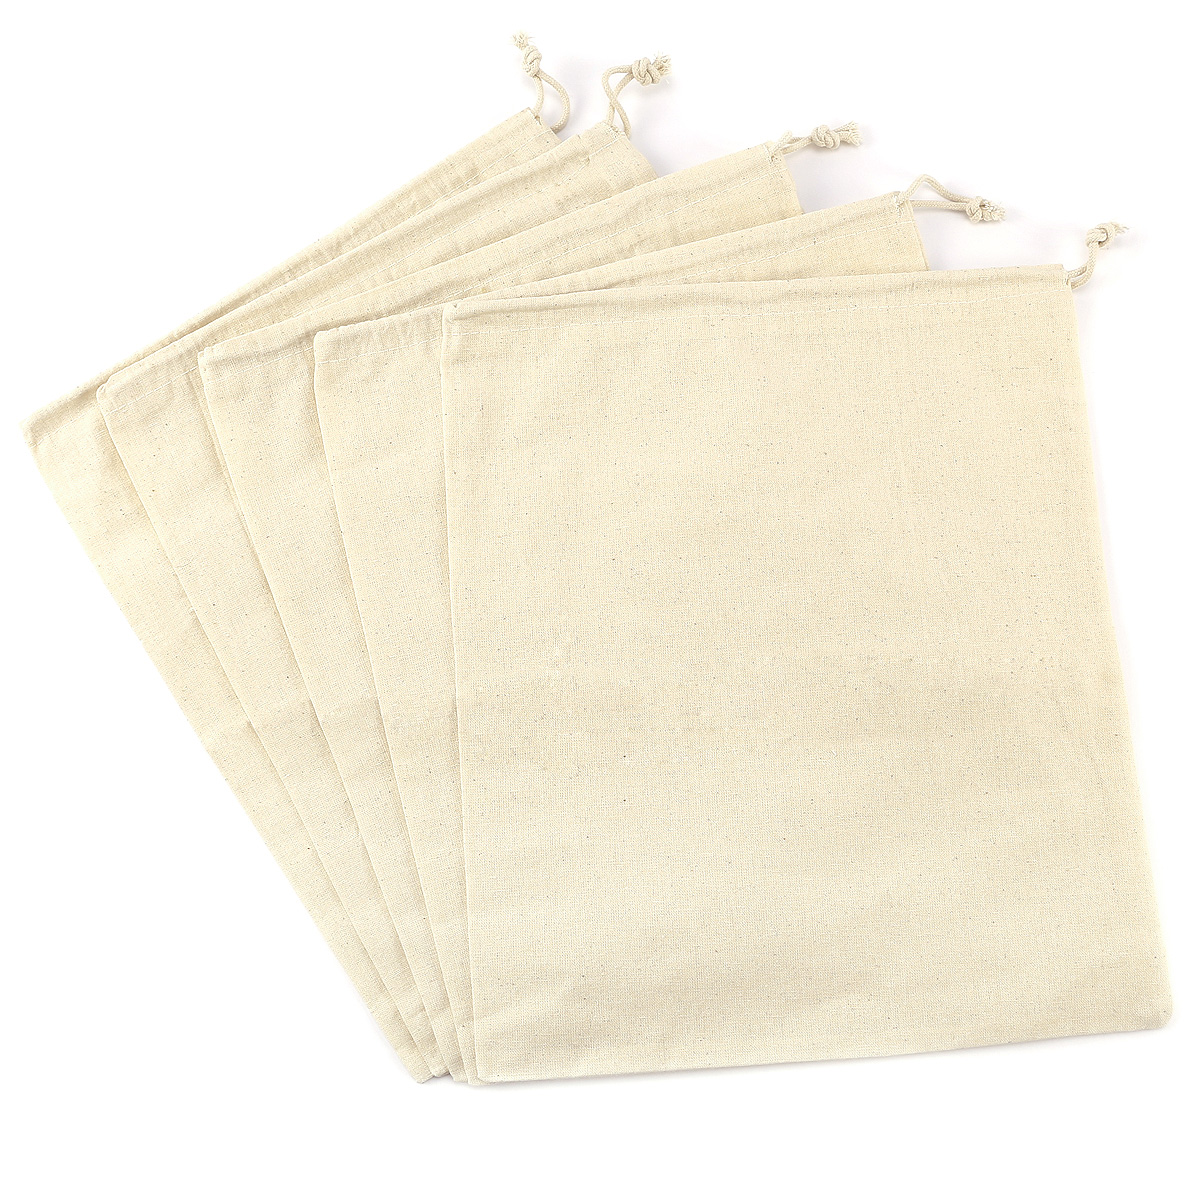 5x small drawstring cotton gift bags gifts jewellery multi sizes ebay - X laundry bags ...